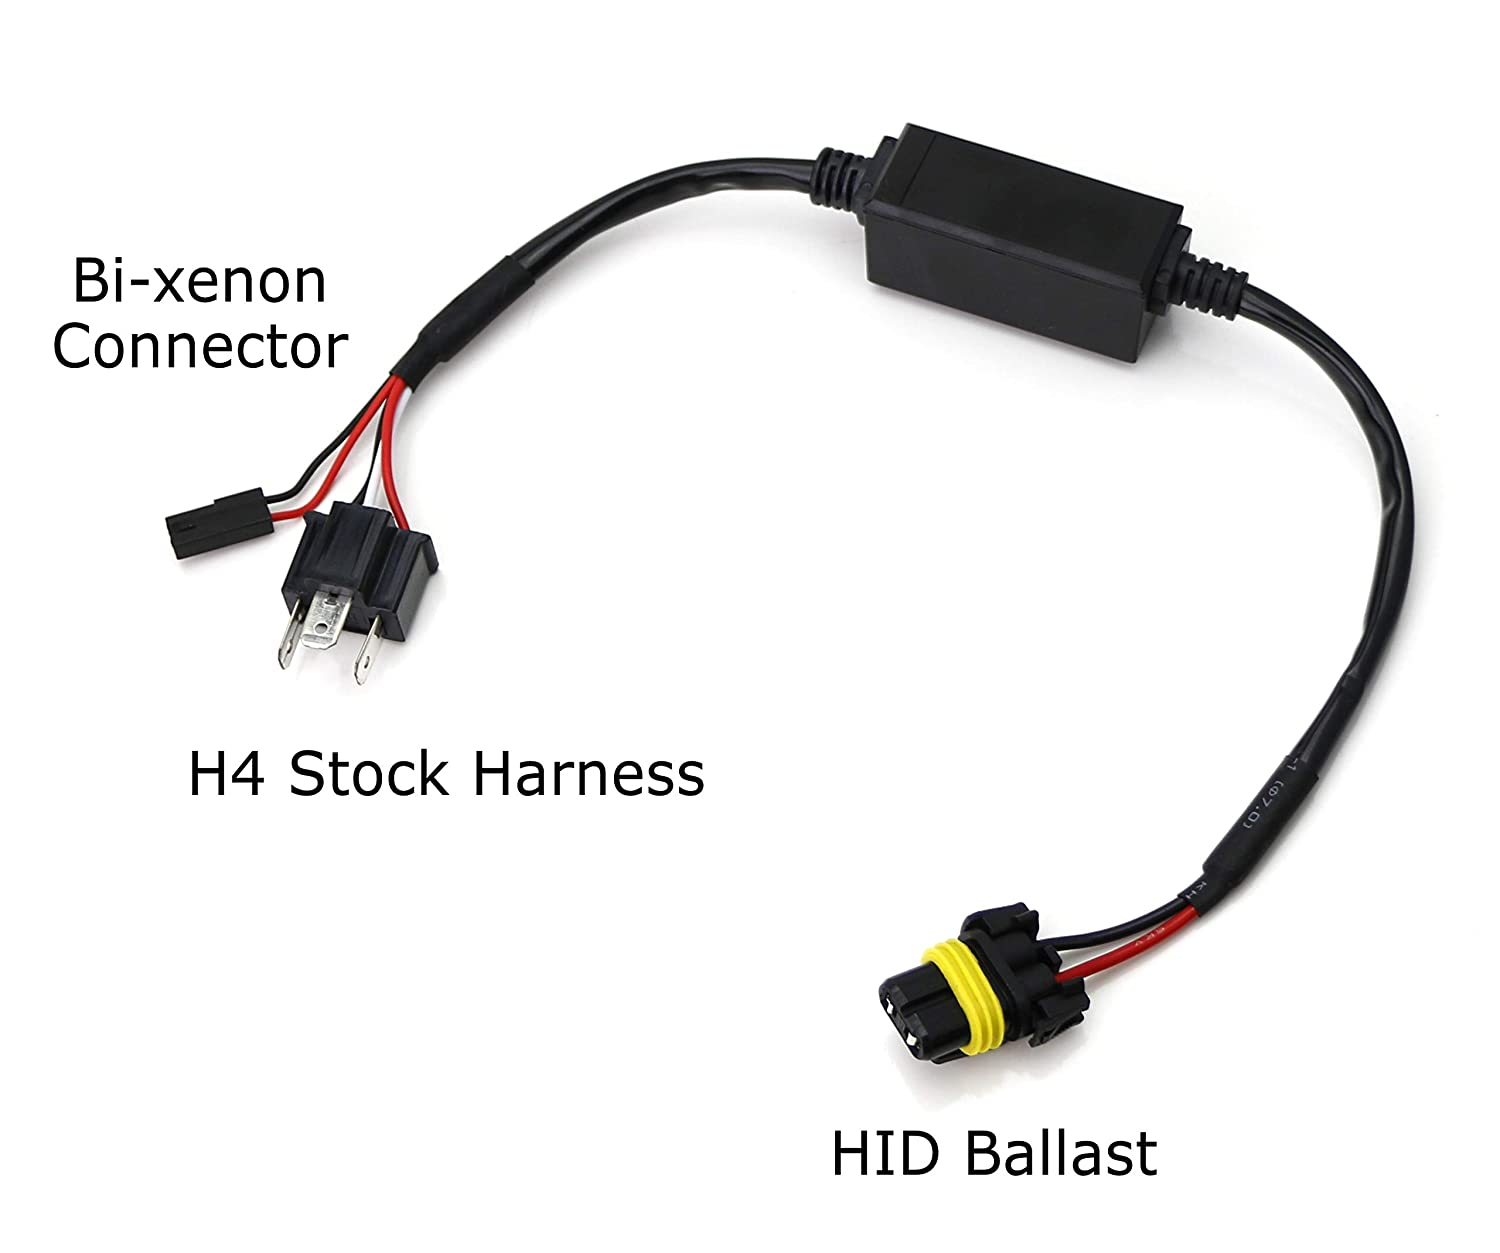 iJDMTOY (2) Easy Relay Harness For H4 9003 Hi/Lo Bi-Xenon Headlight on